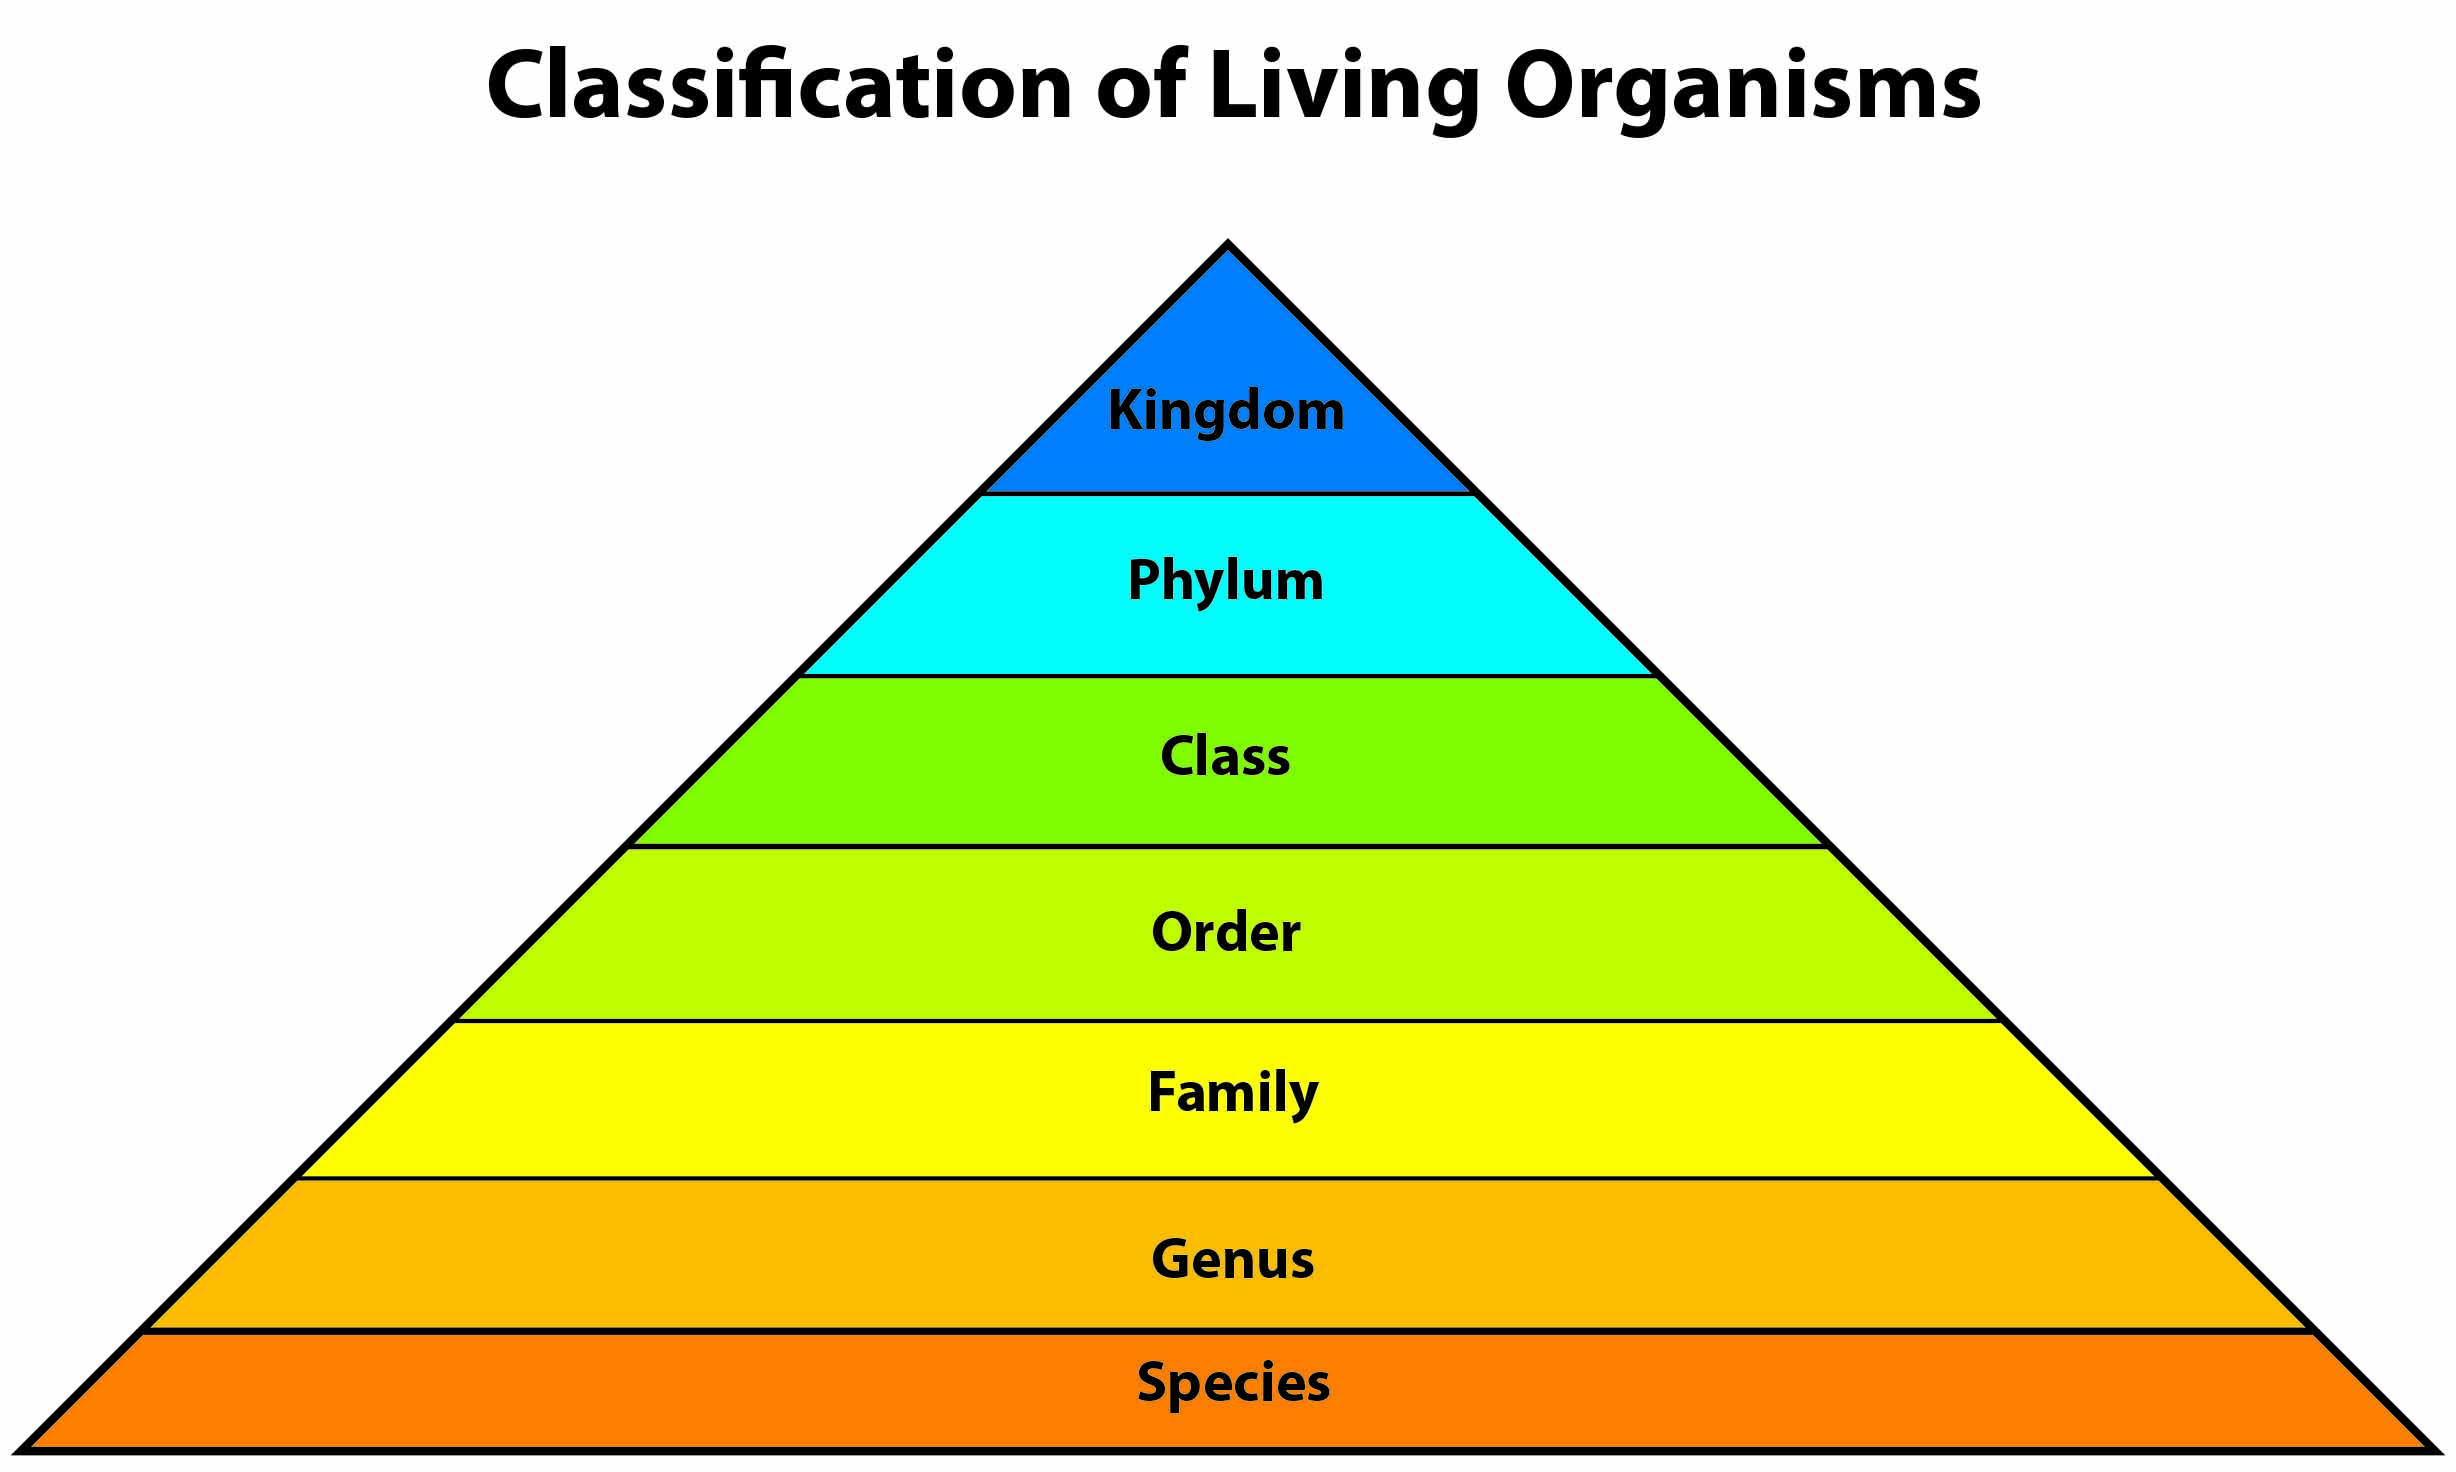 An overview of the classification of living organisms